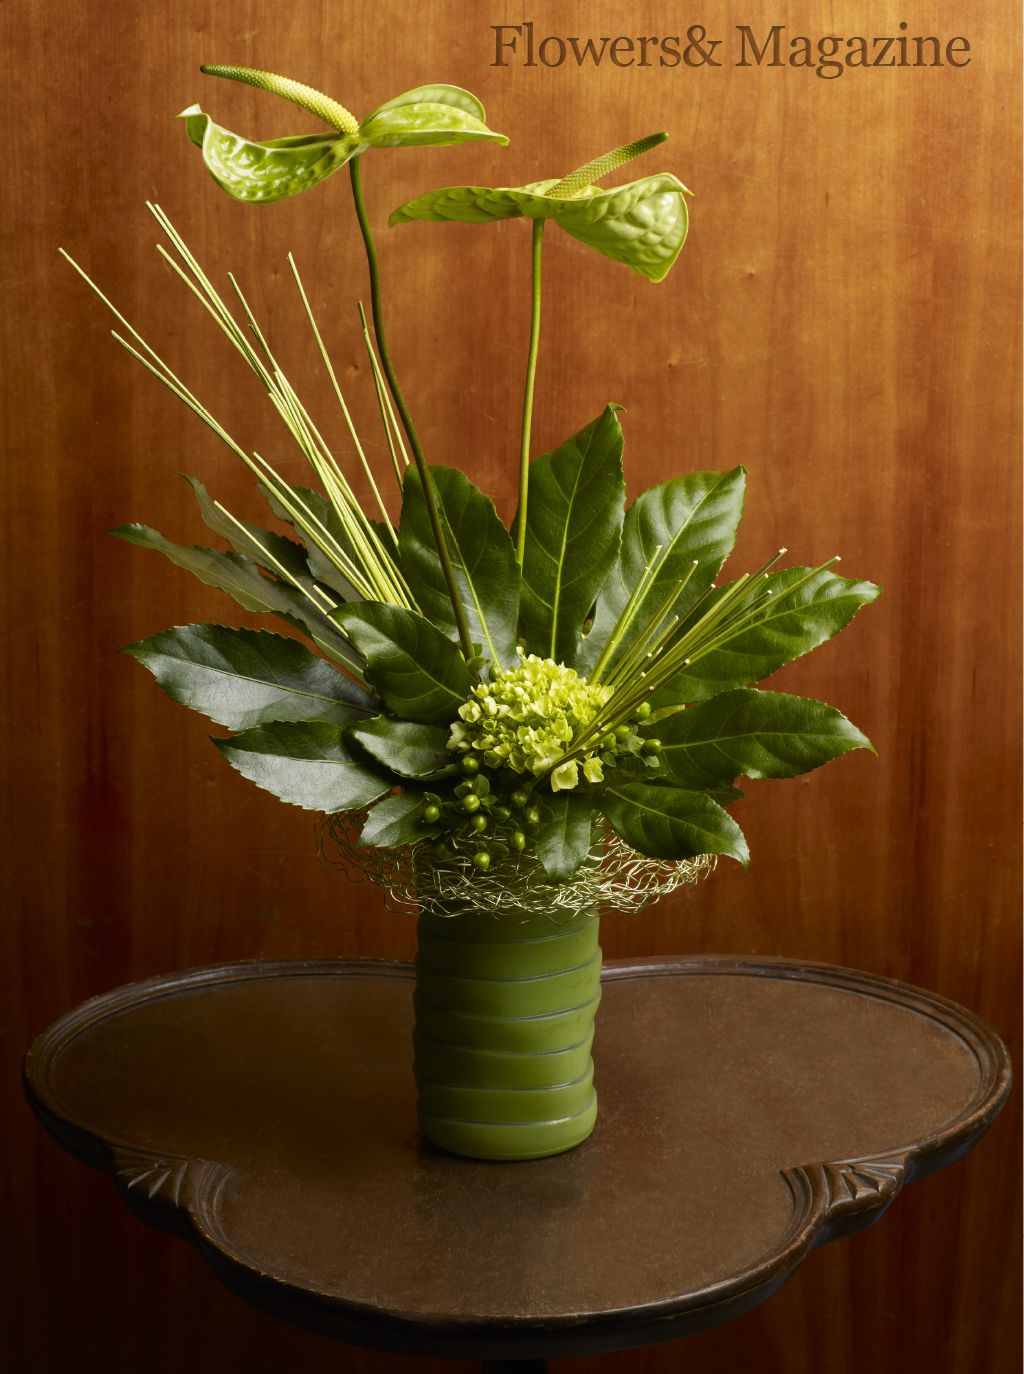 Wavy green anthuriums shelter the base of the monochromatic arrangement while hydrangea, hypericum and green midollino reinforce the radial lines of the fatsia foliage.  Design by Jim Ganger AIFD, photography by Ron Derhacopian. #flowersand  #flowers  #floraldesign